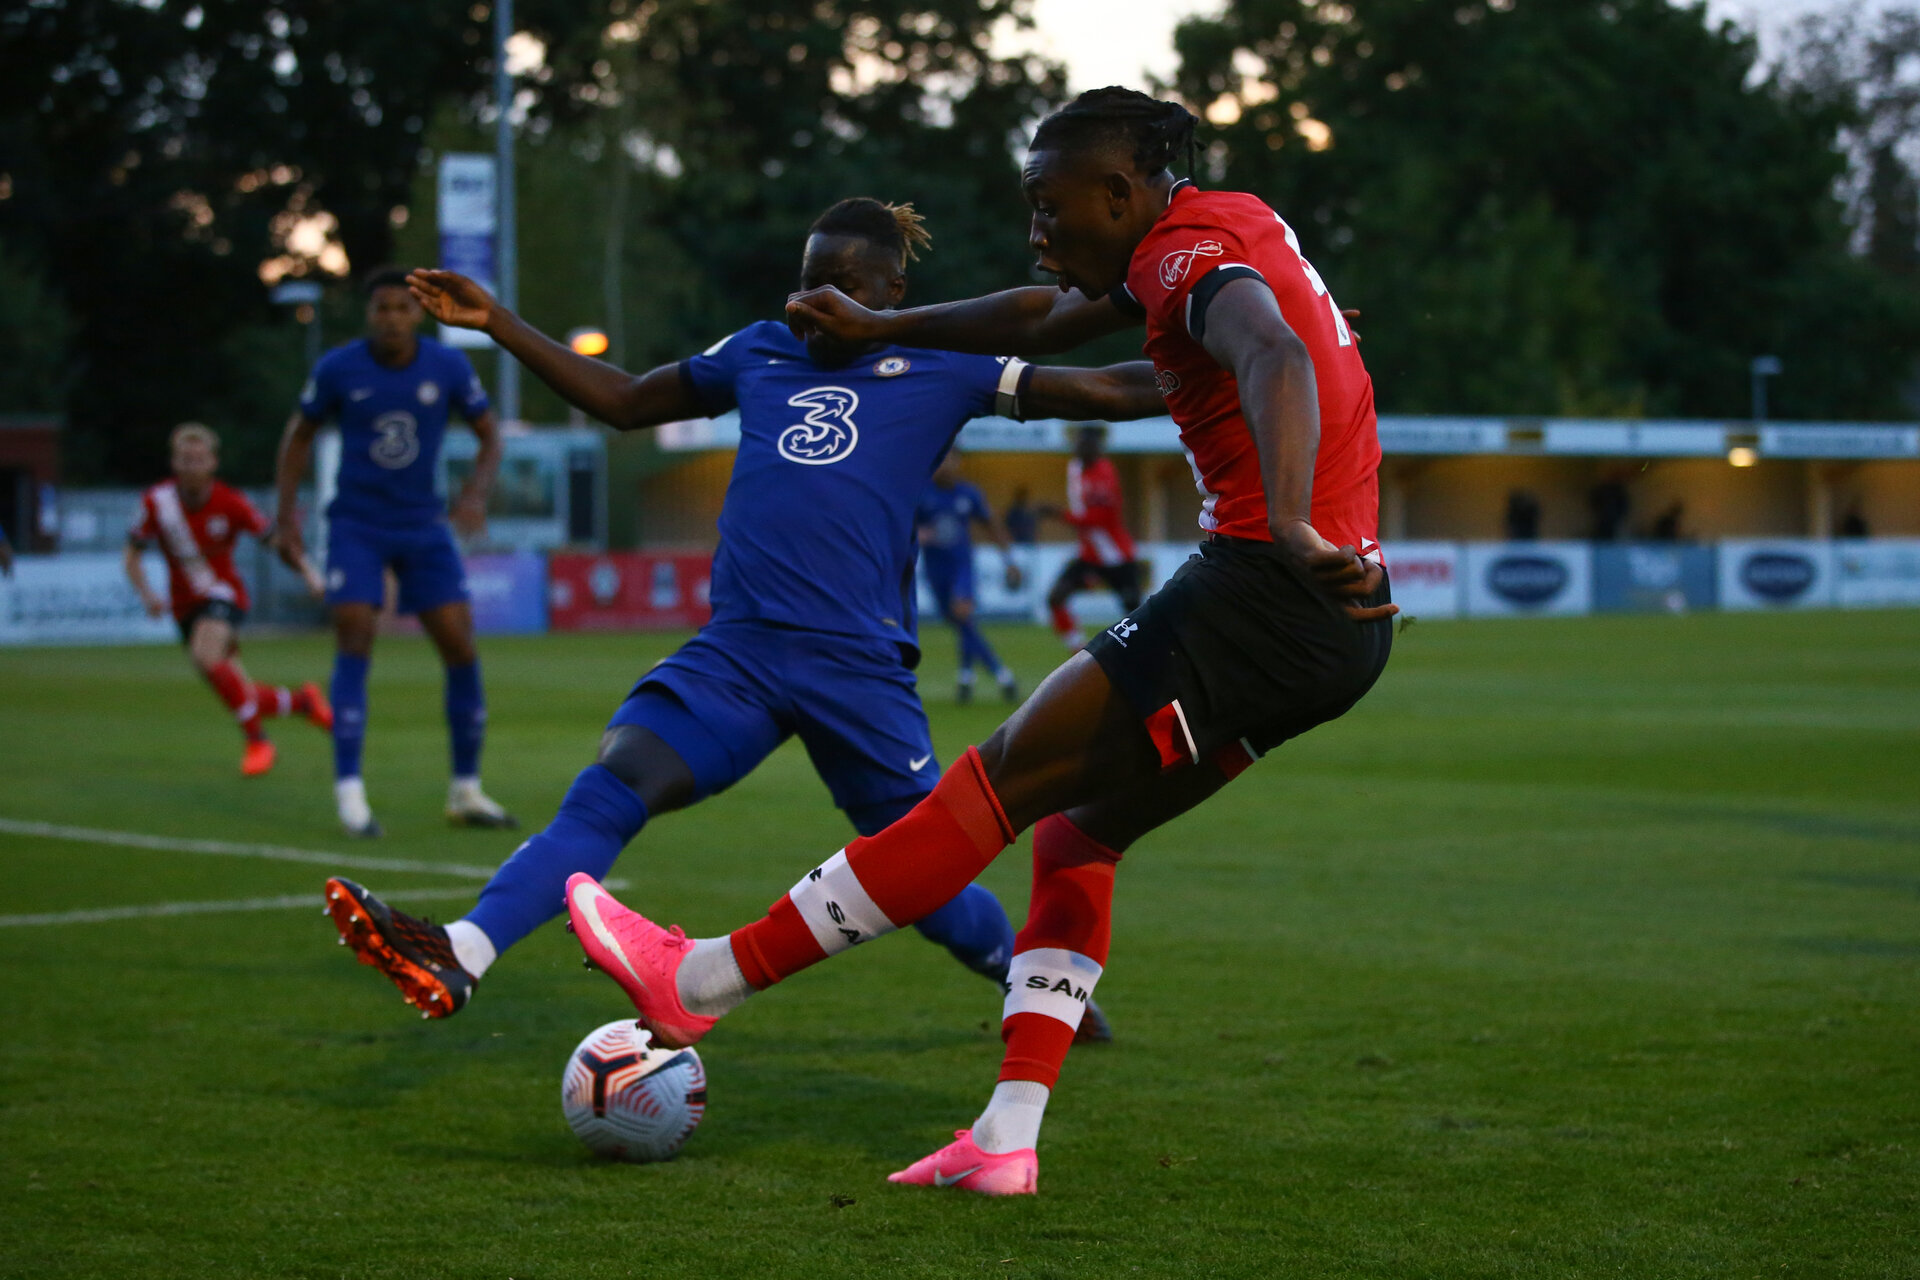 SOUTHAMPTON, ENGLAND - SEPTEMBER 18: during the Premier League 2 match between Southampton FC B Team and Chelsea FC at Snows Stadium on September 18, 2020 in Southampton, England. (Photo by Isabelle Field/Southampton FC via Getty Images)